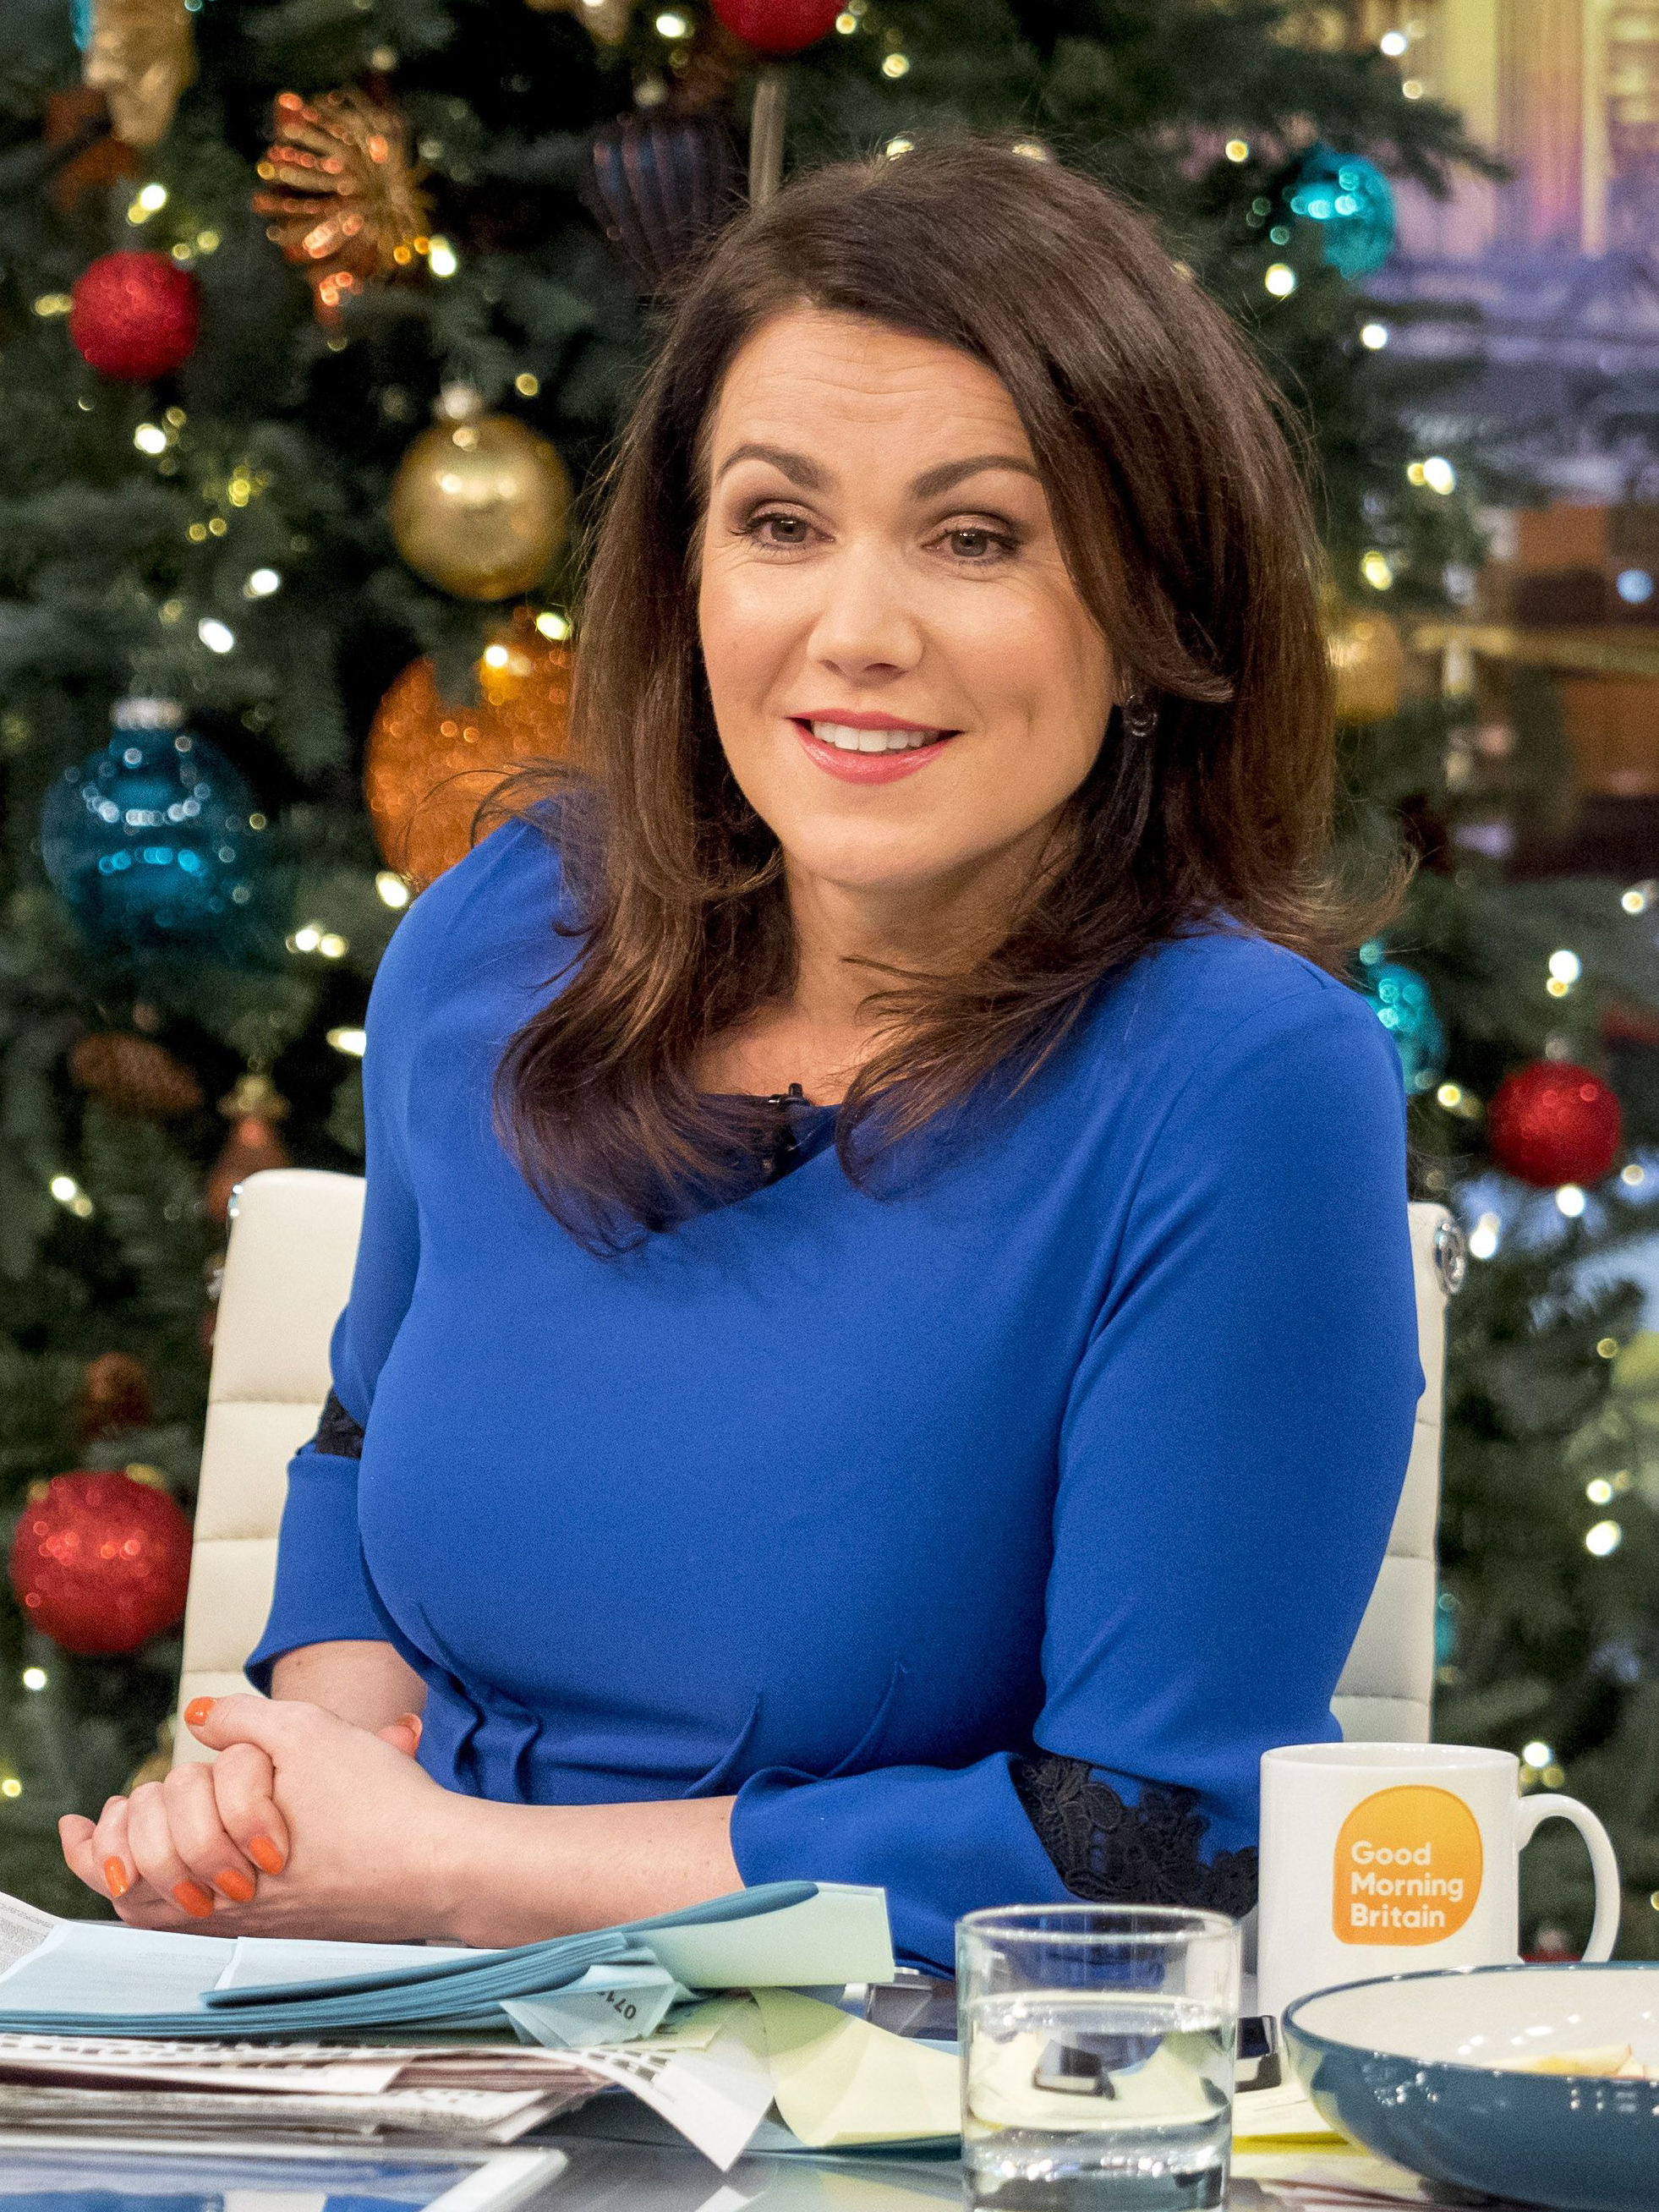 Good News Is That This Morning They >> Susanna Reid left red-faced after X-RATED gaffe on Good Morning Britain